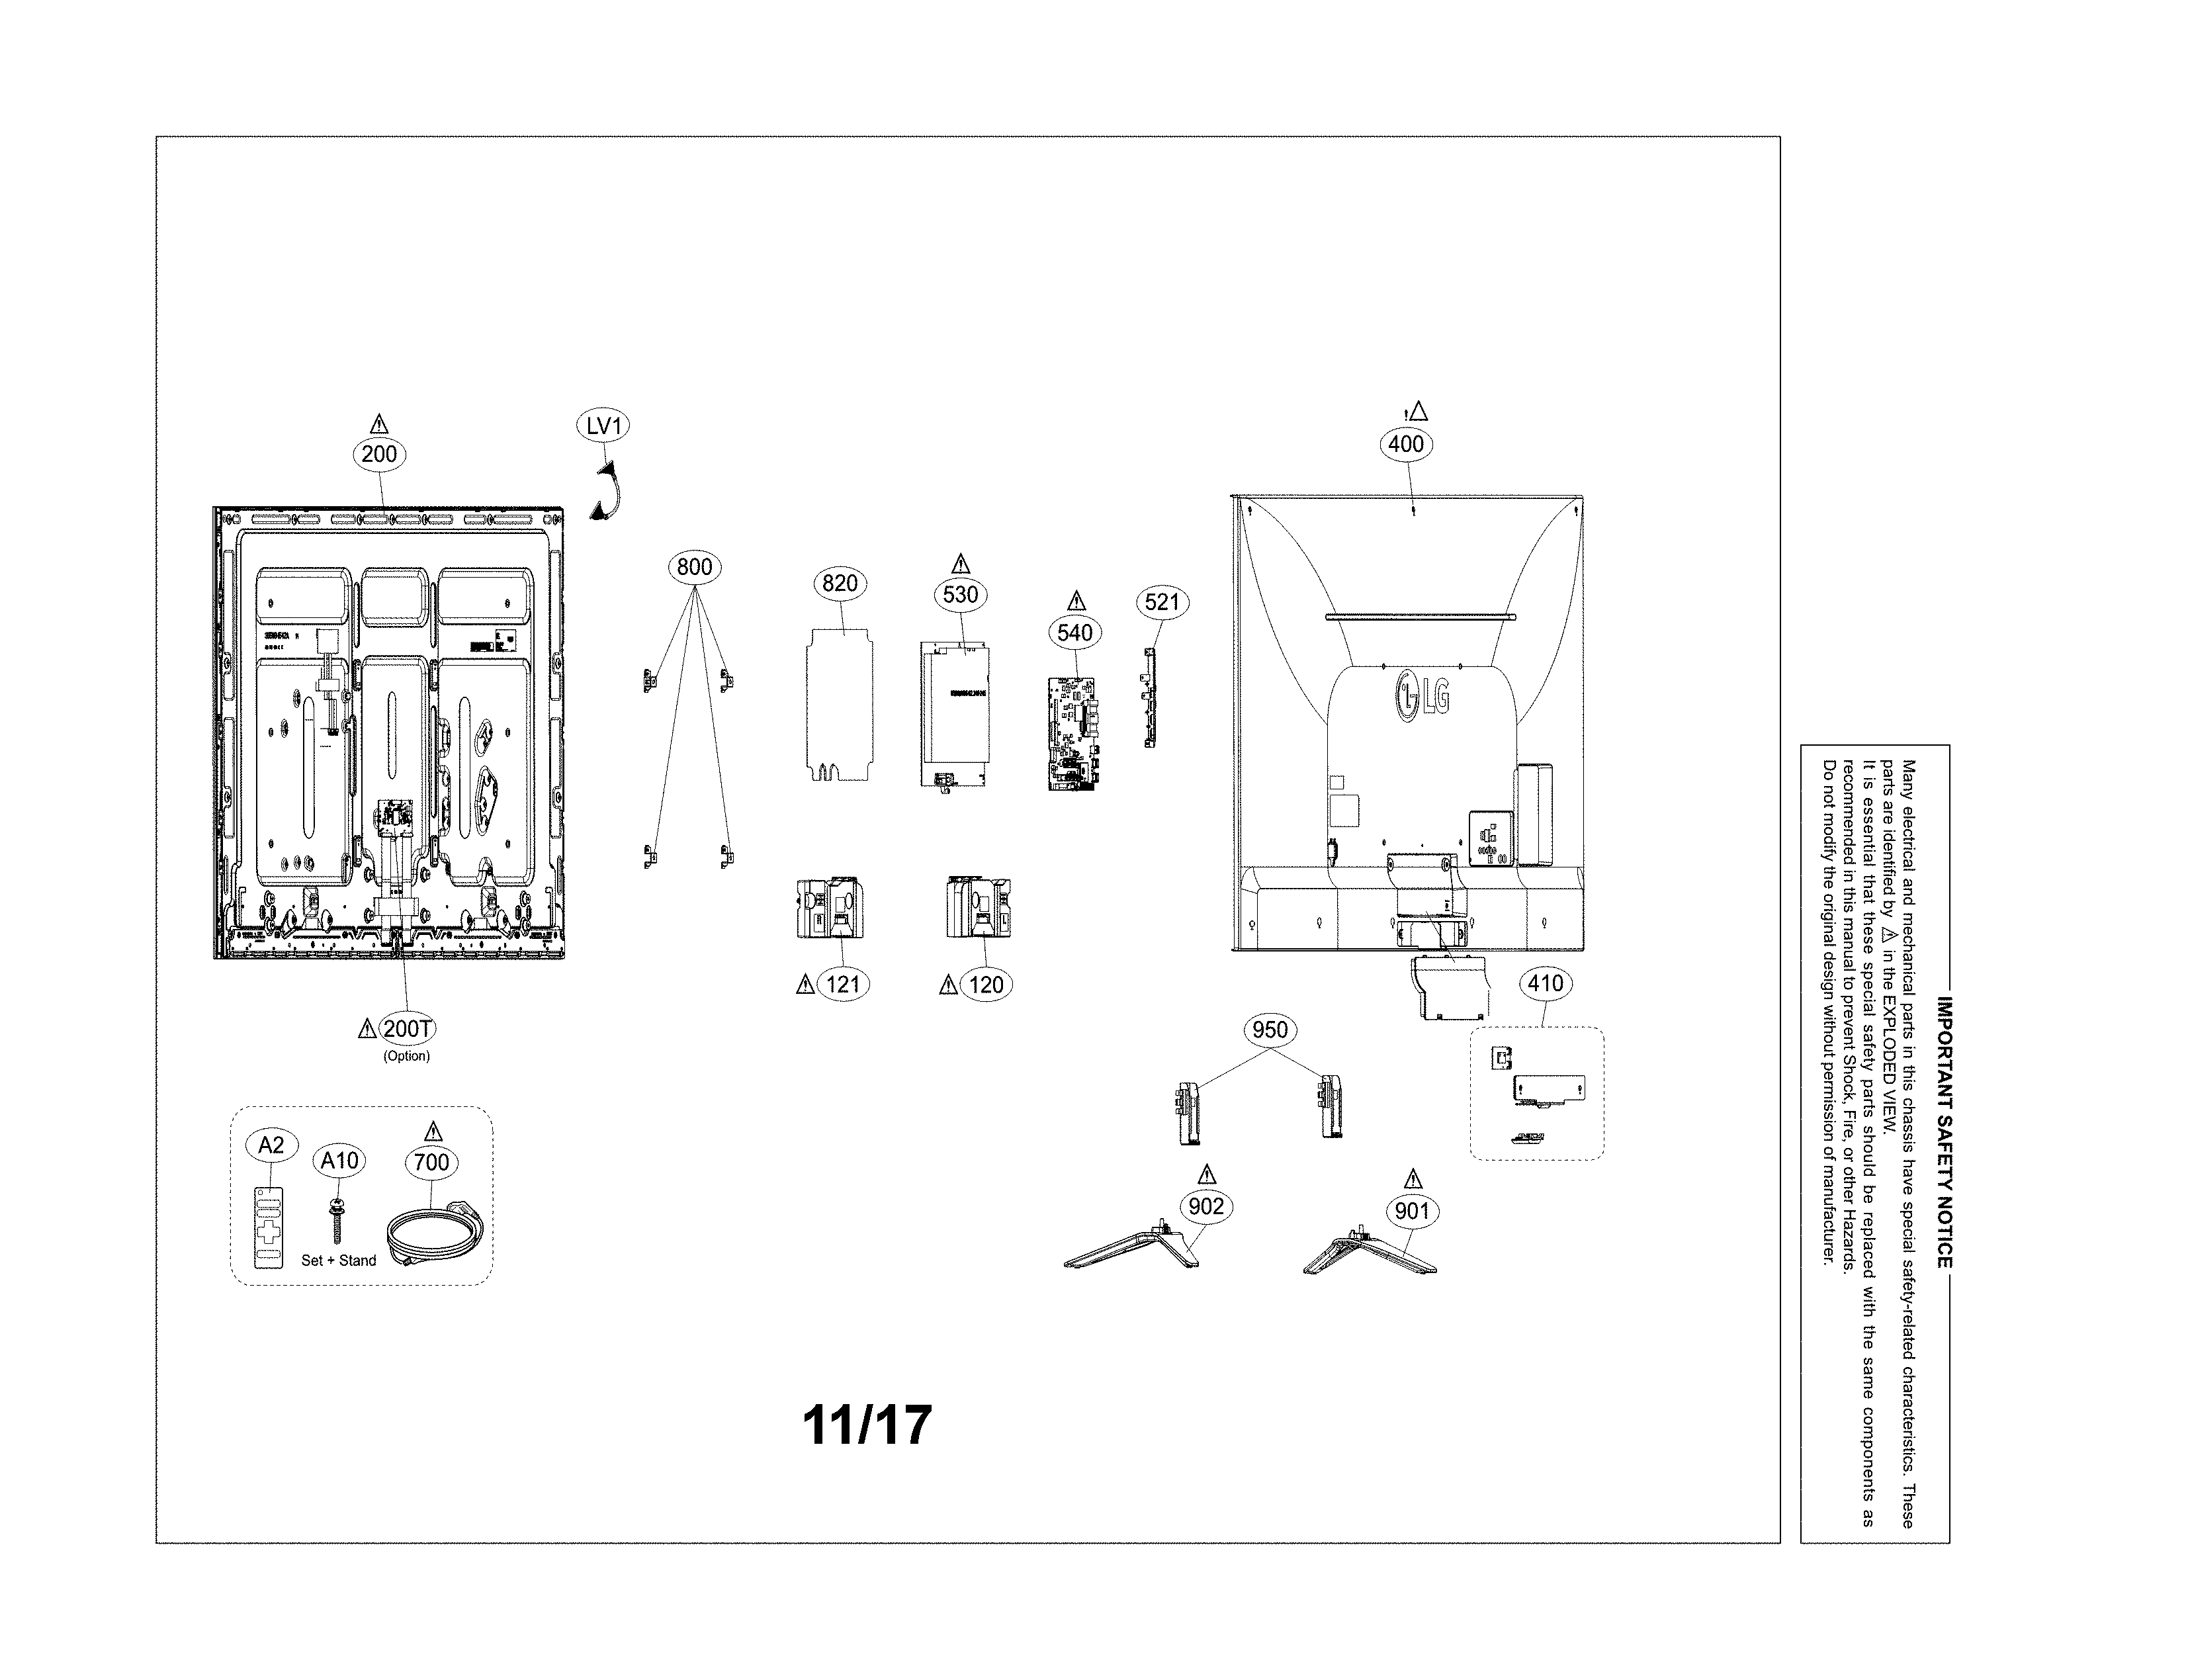 LG 60UH6550 exploded view diagram